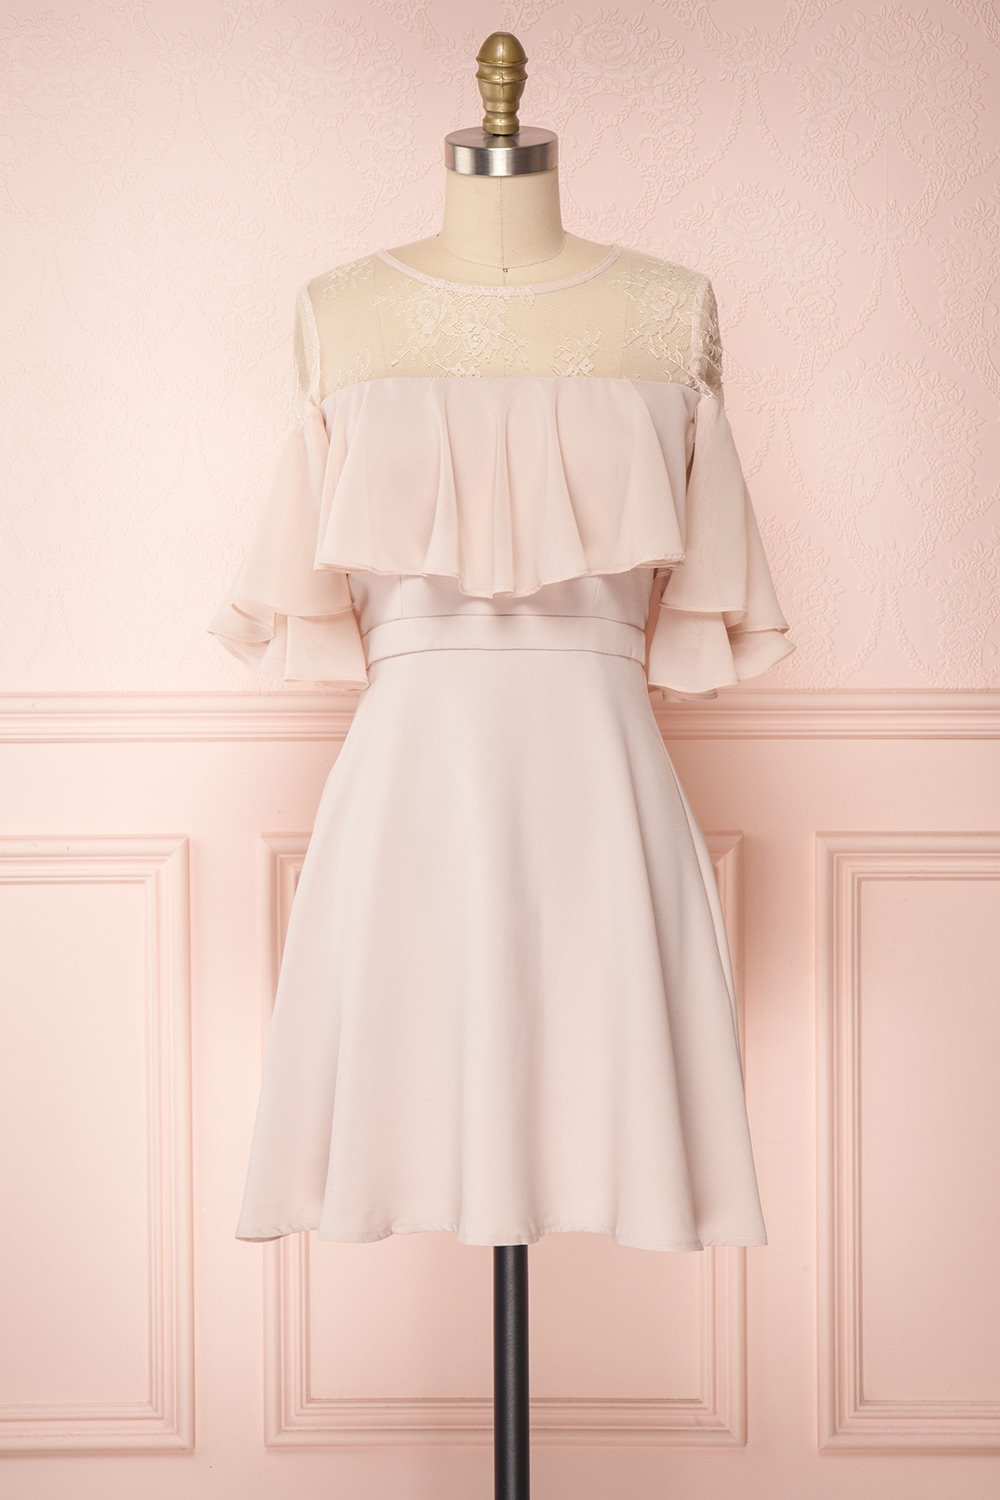 Chiffon 3/4 Sleeves Appliques Lace Bridesmaids Dresses